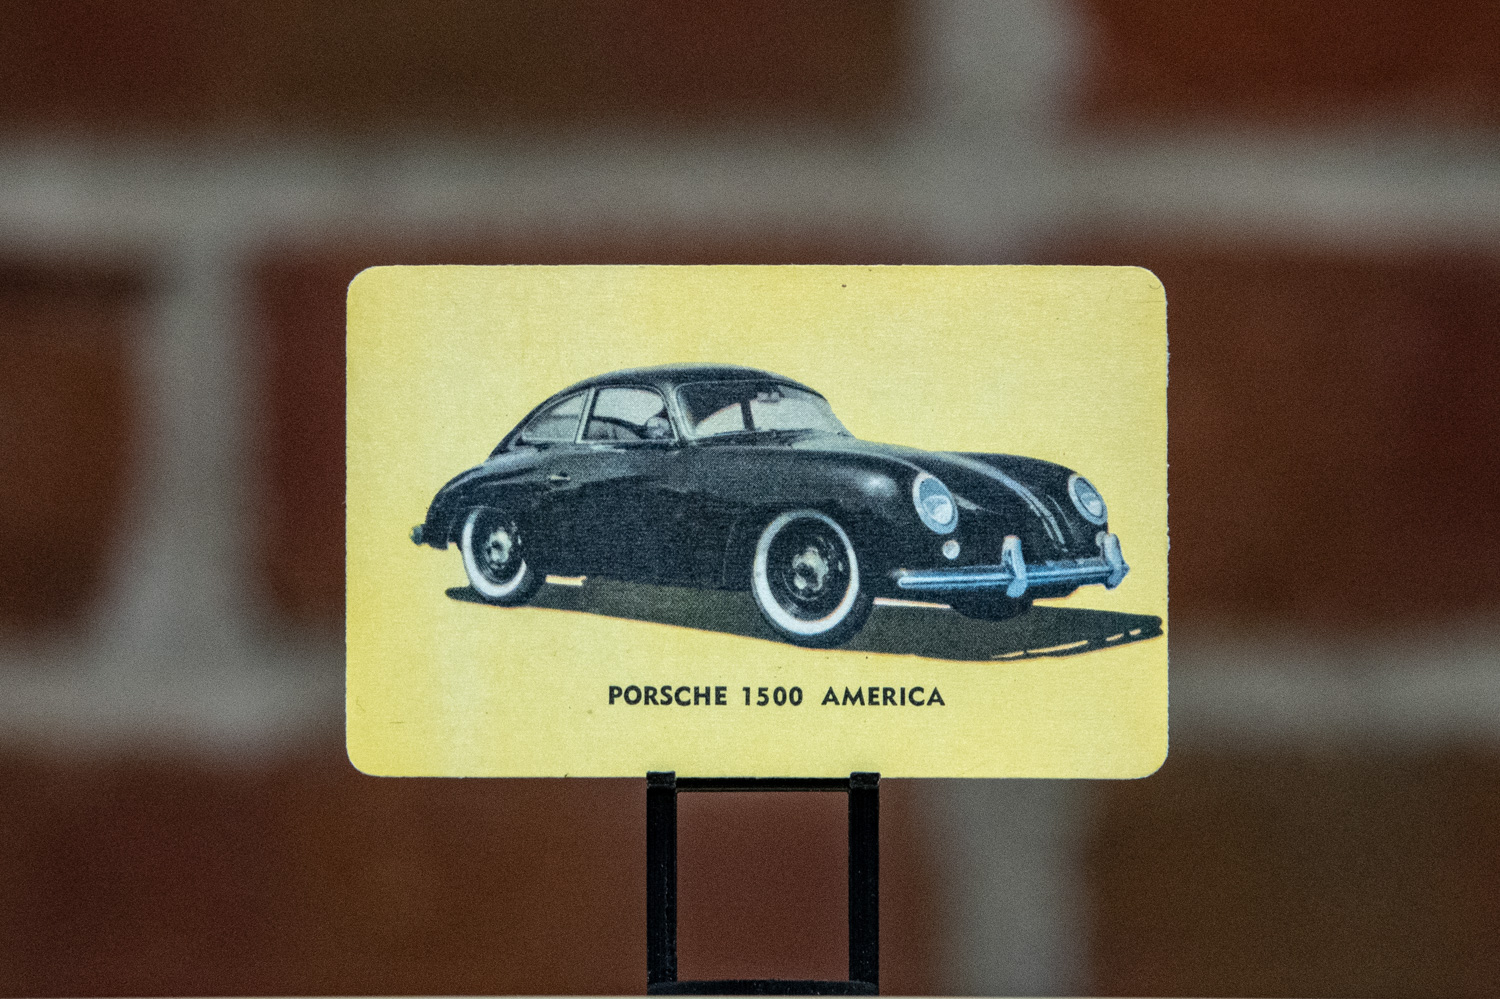 The first card in the set is a Porsche 1500 America.